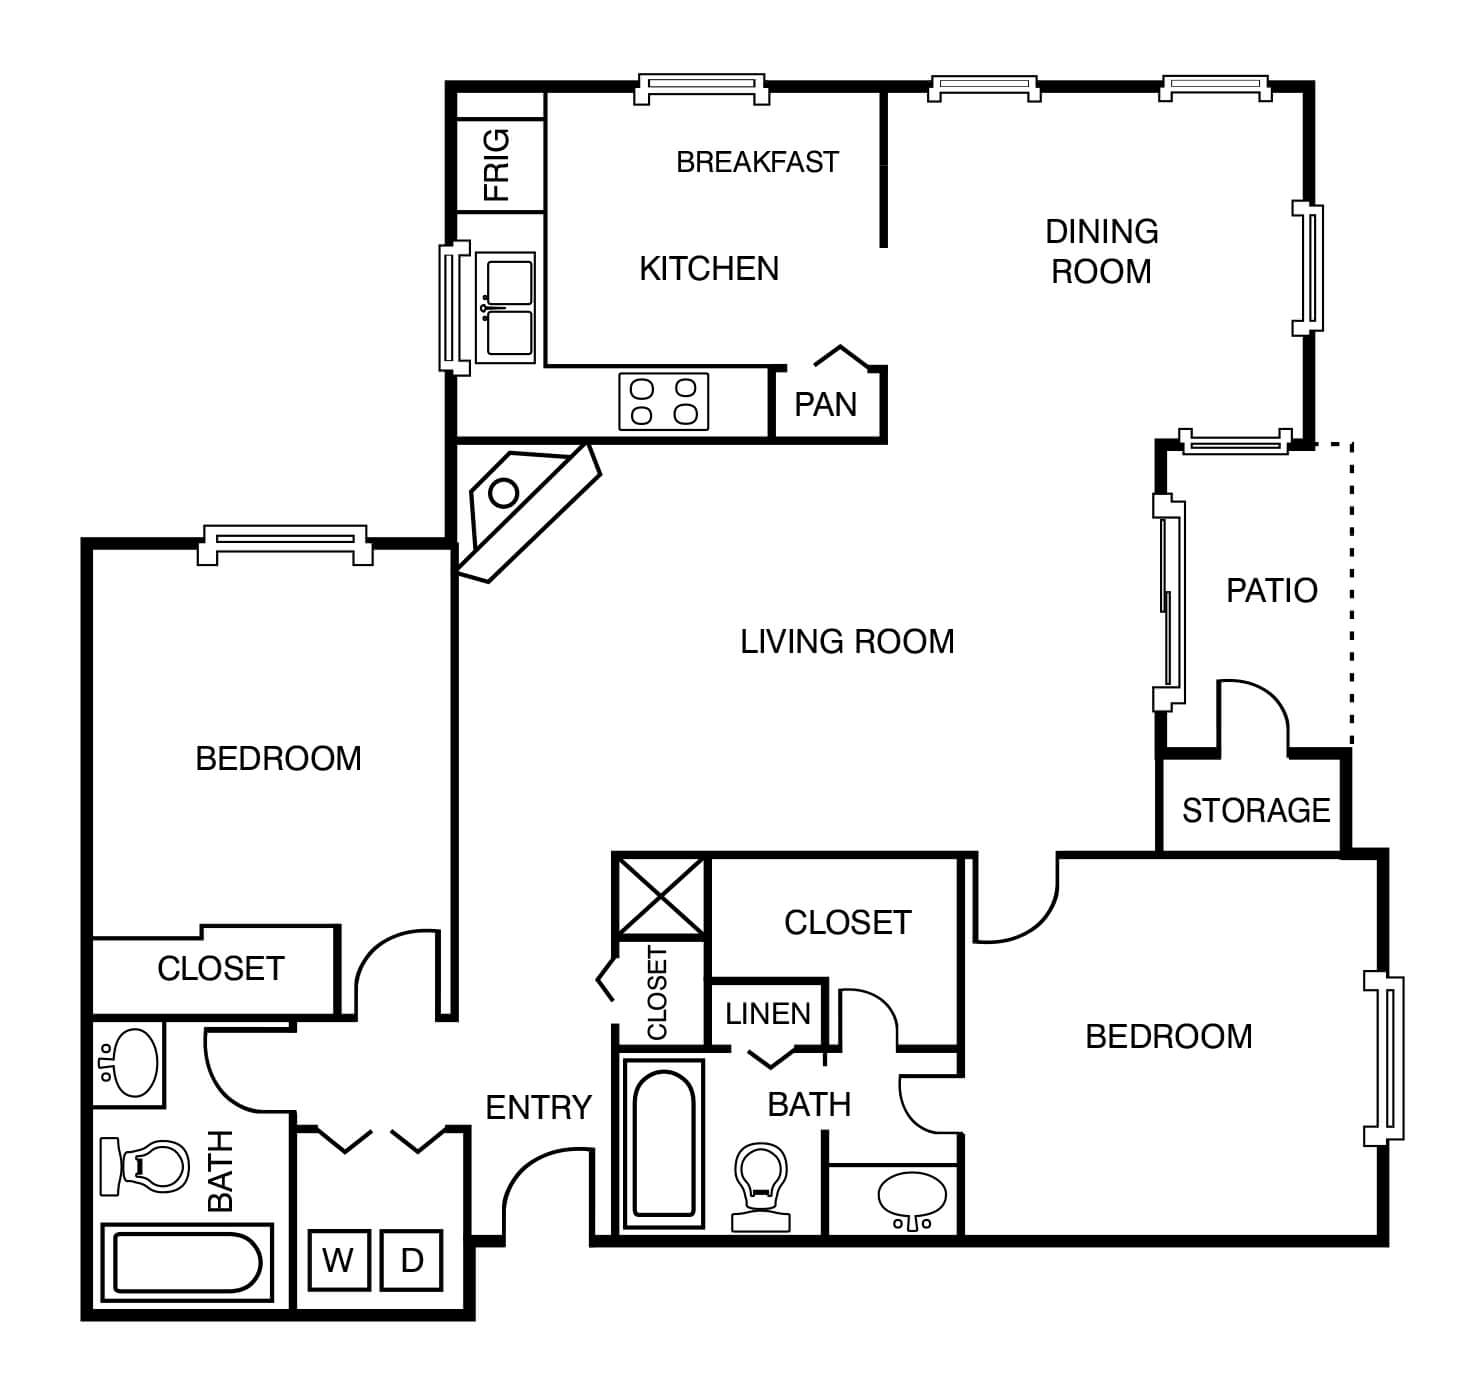 2 bed 2 bath - 1083-1089 sq ft.